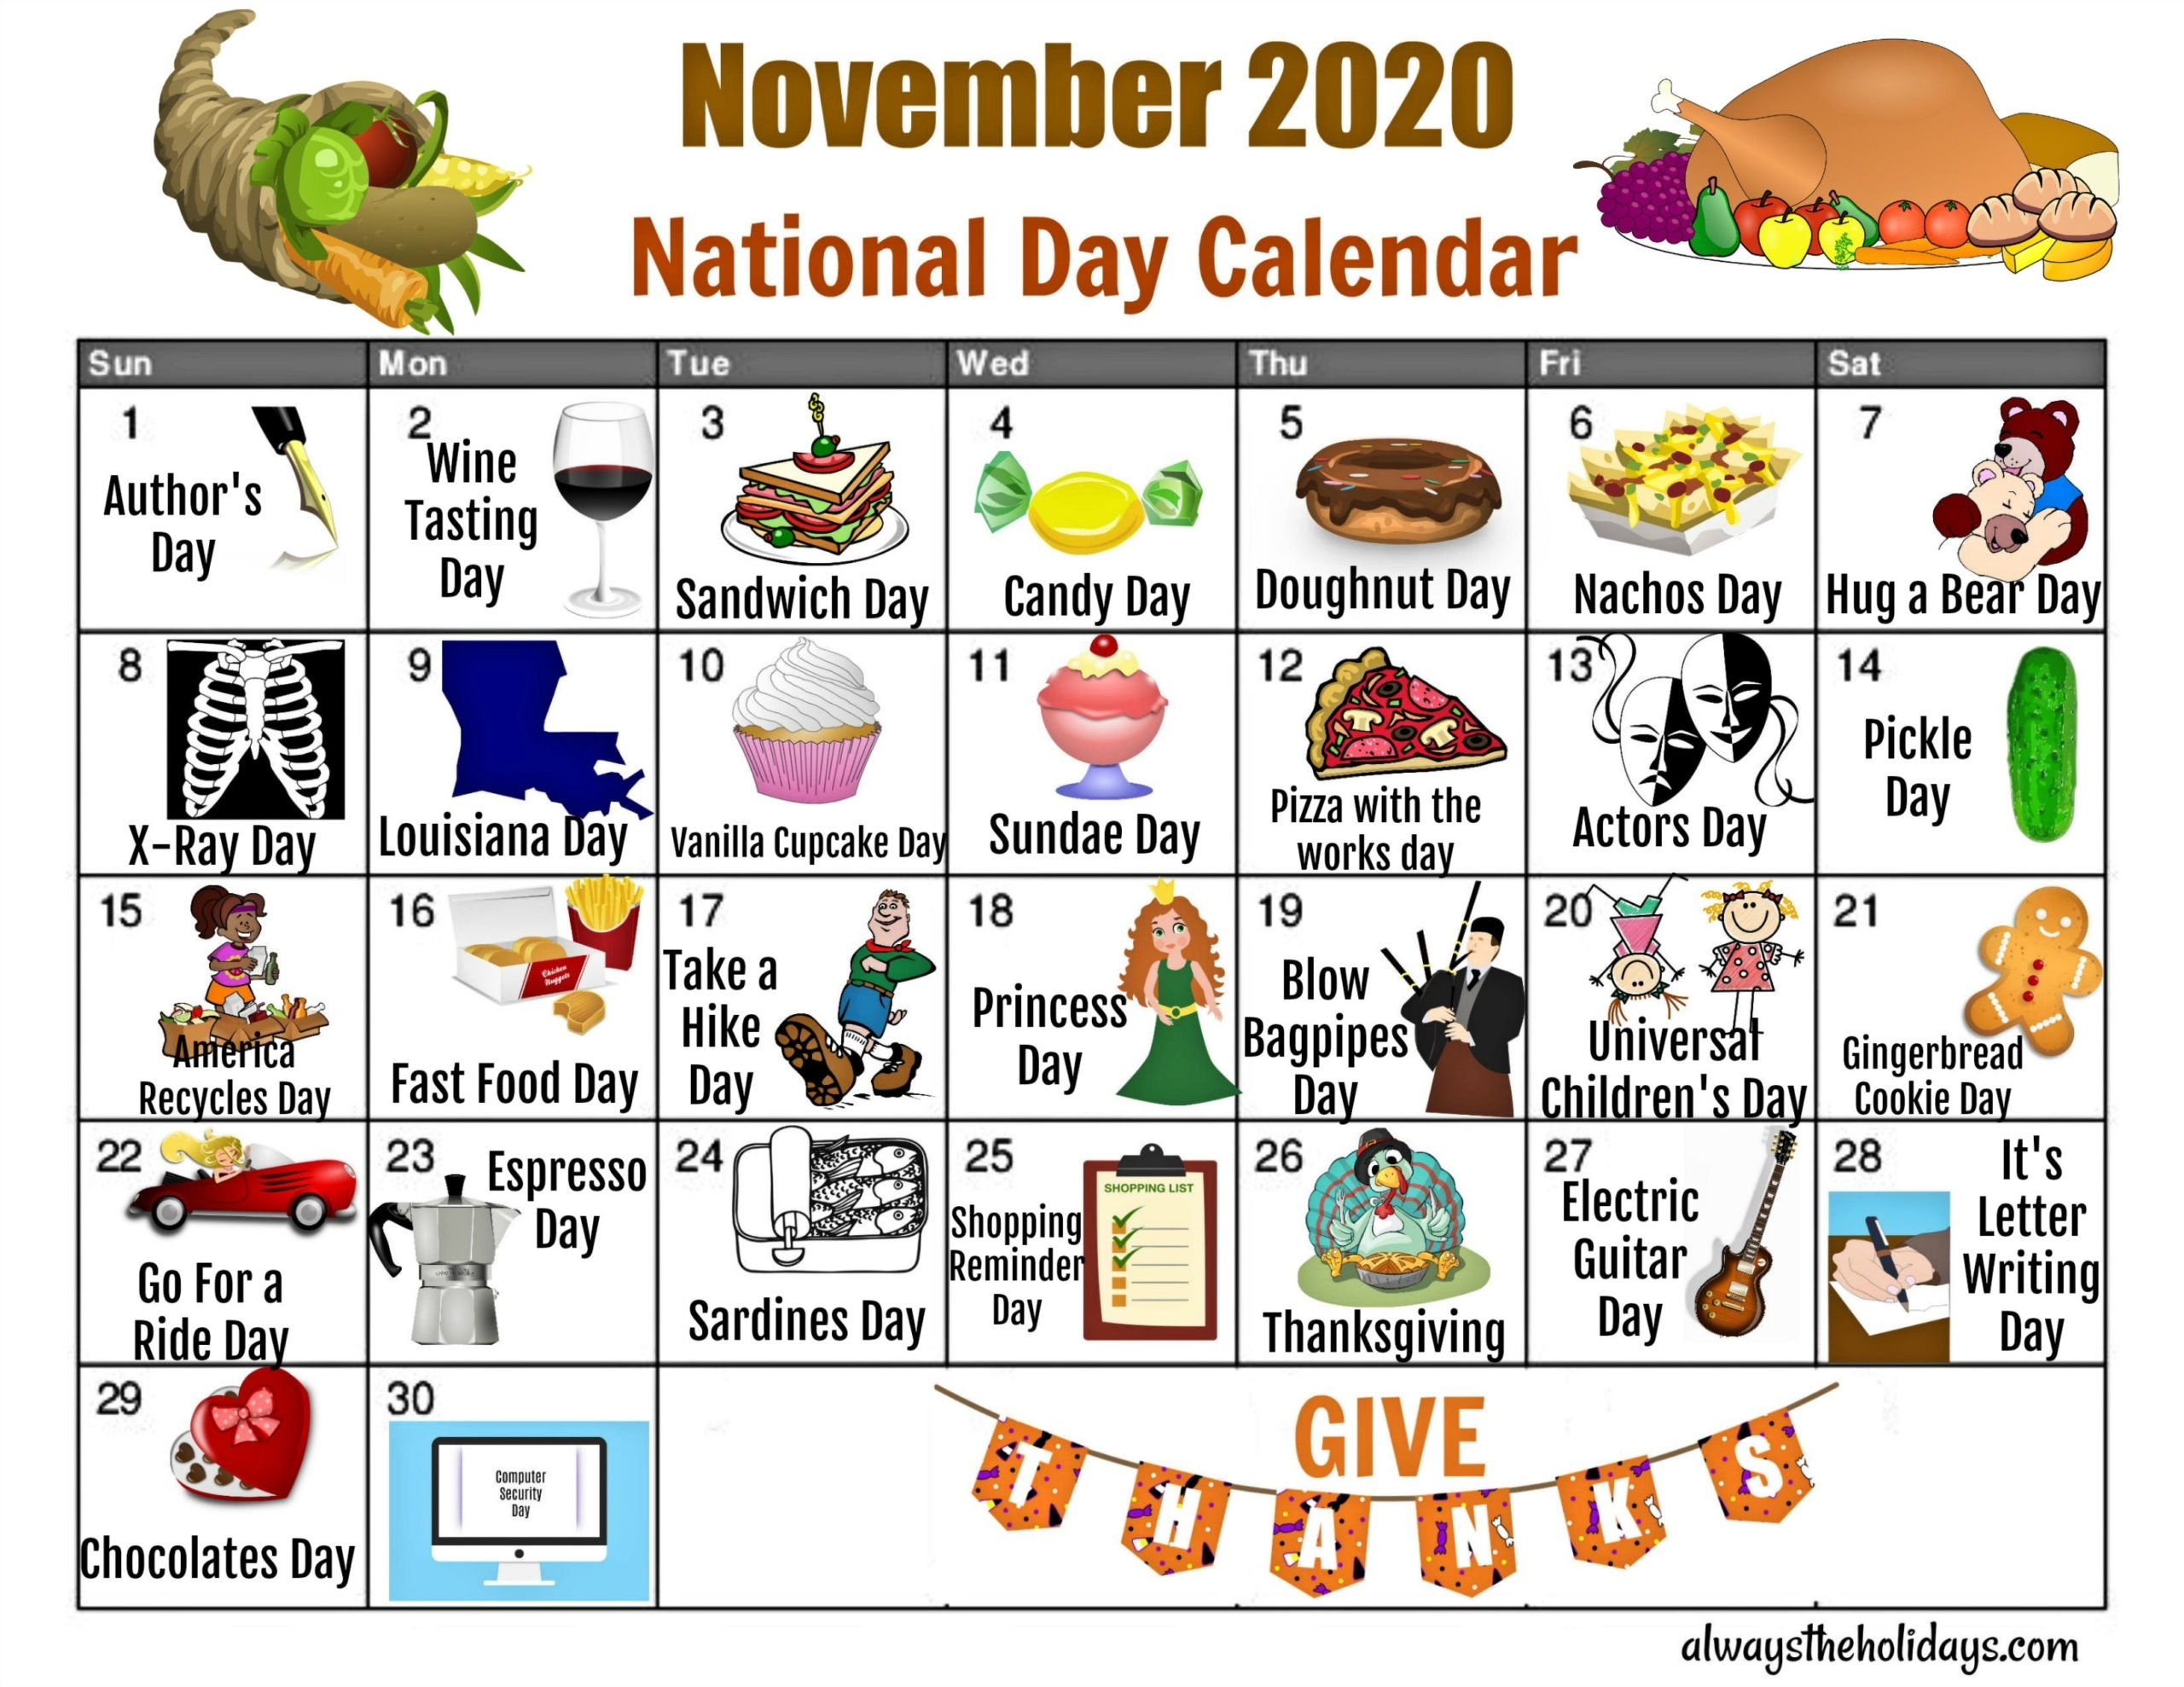 Catch July National Day Calendar 2021 Printable